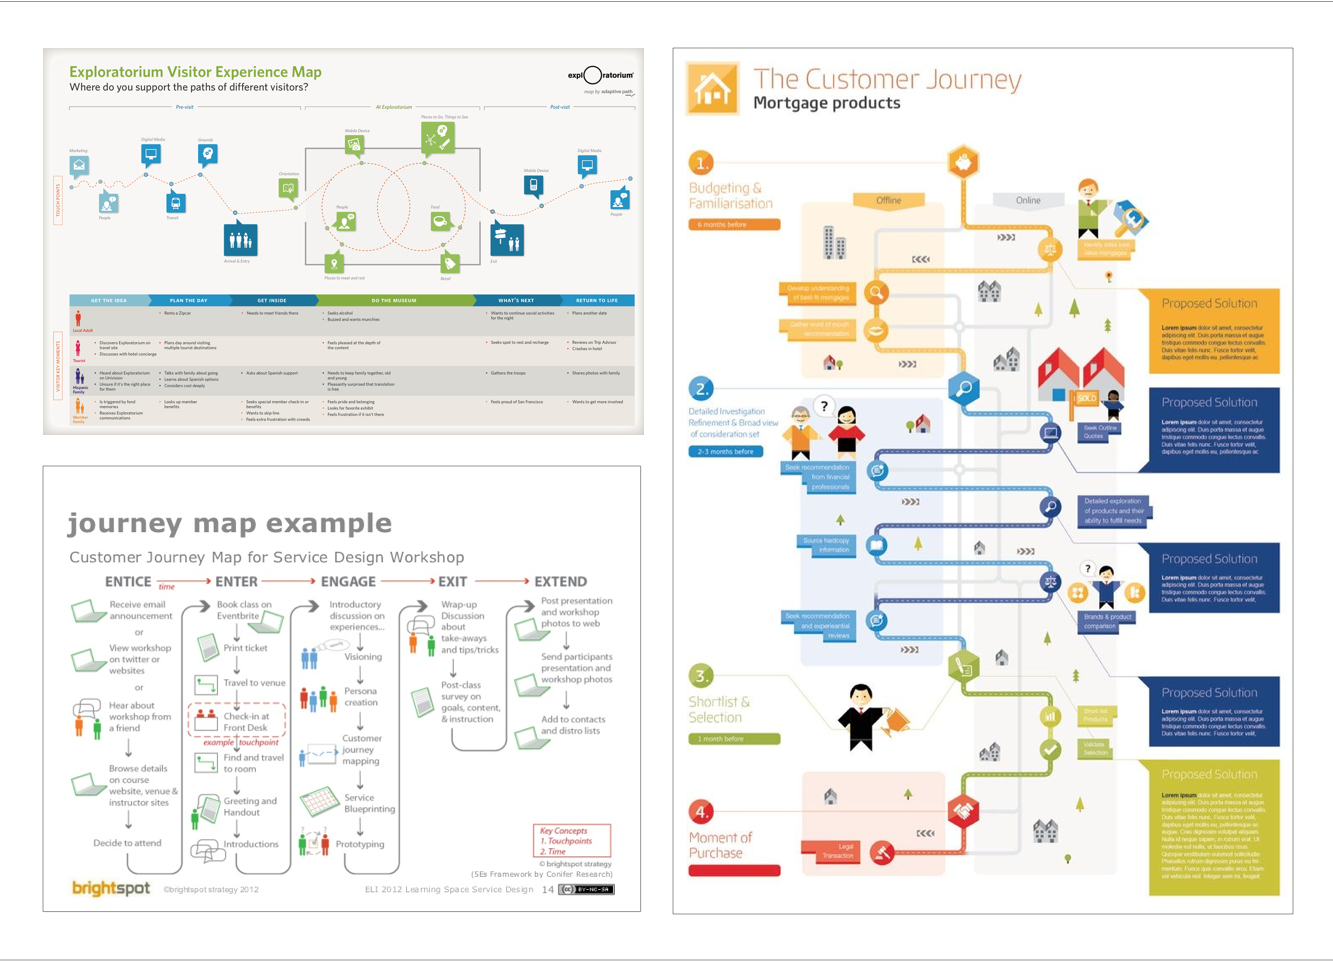 Digitising A Customer Journey Map Nmbl Consulting Medium - Customer journey mapping book